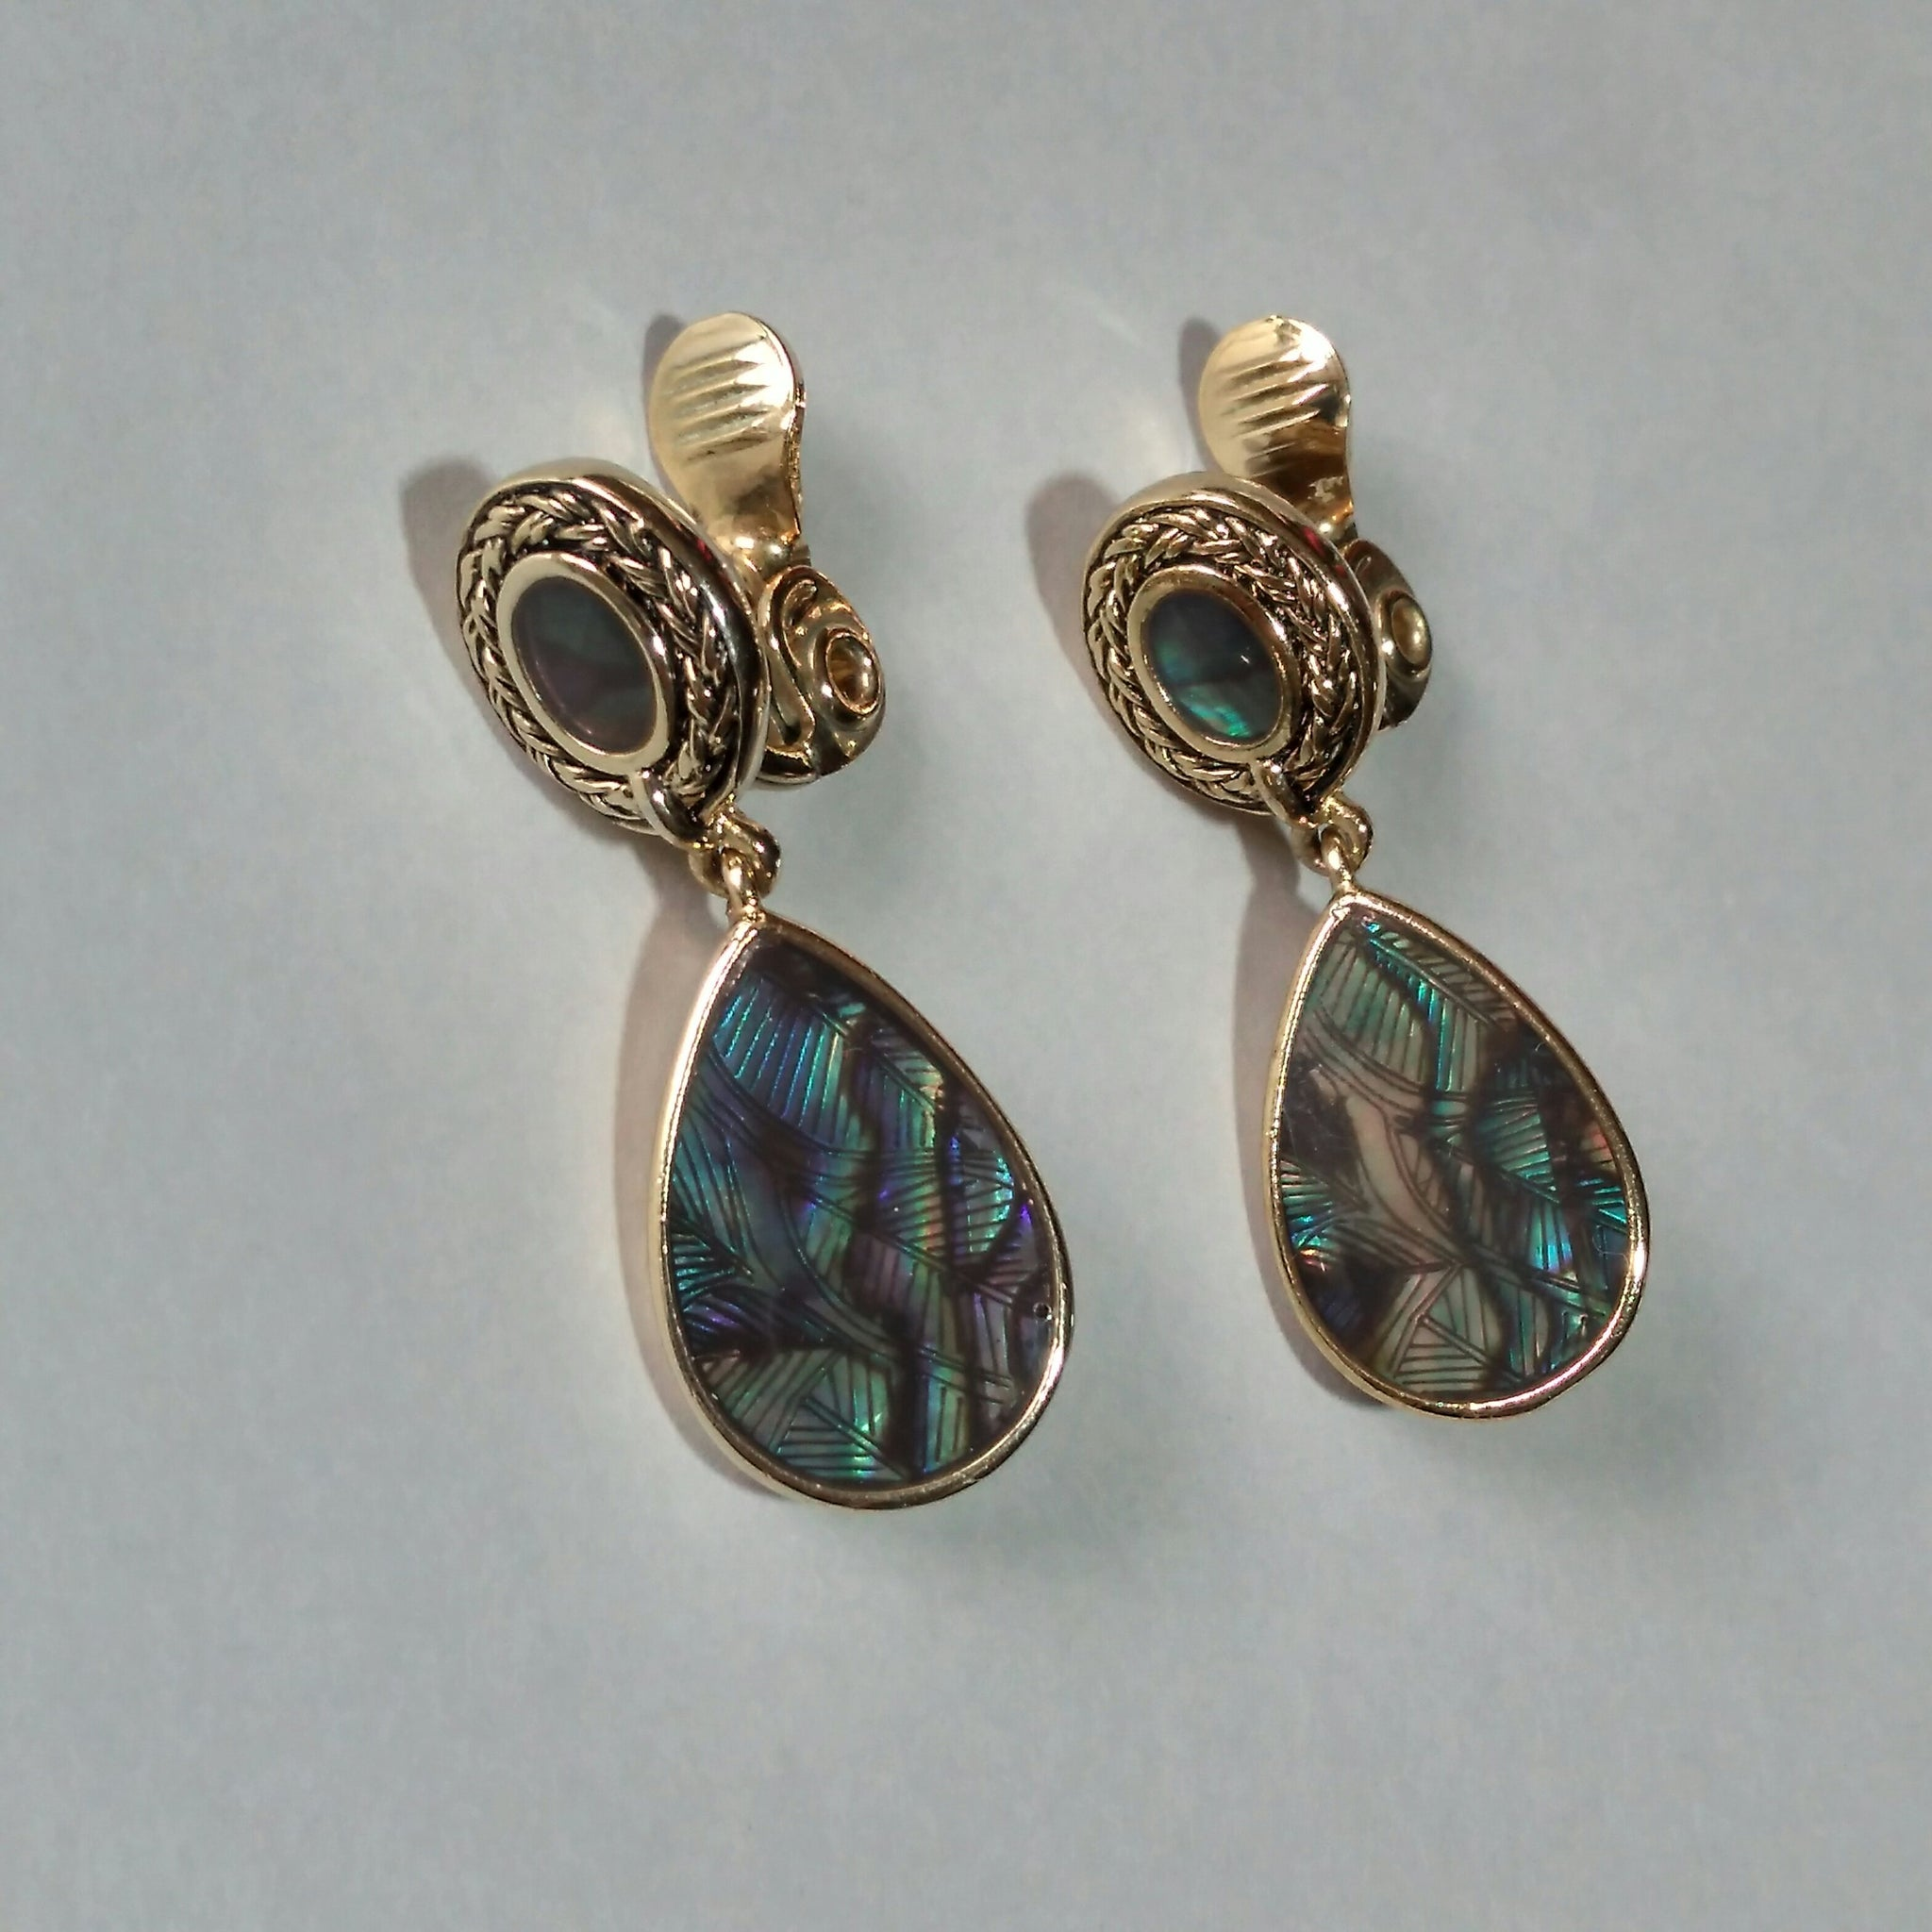 1970s Abalone Earrings